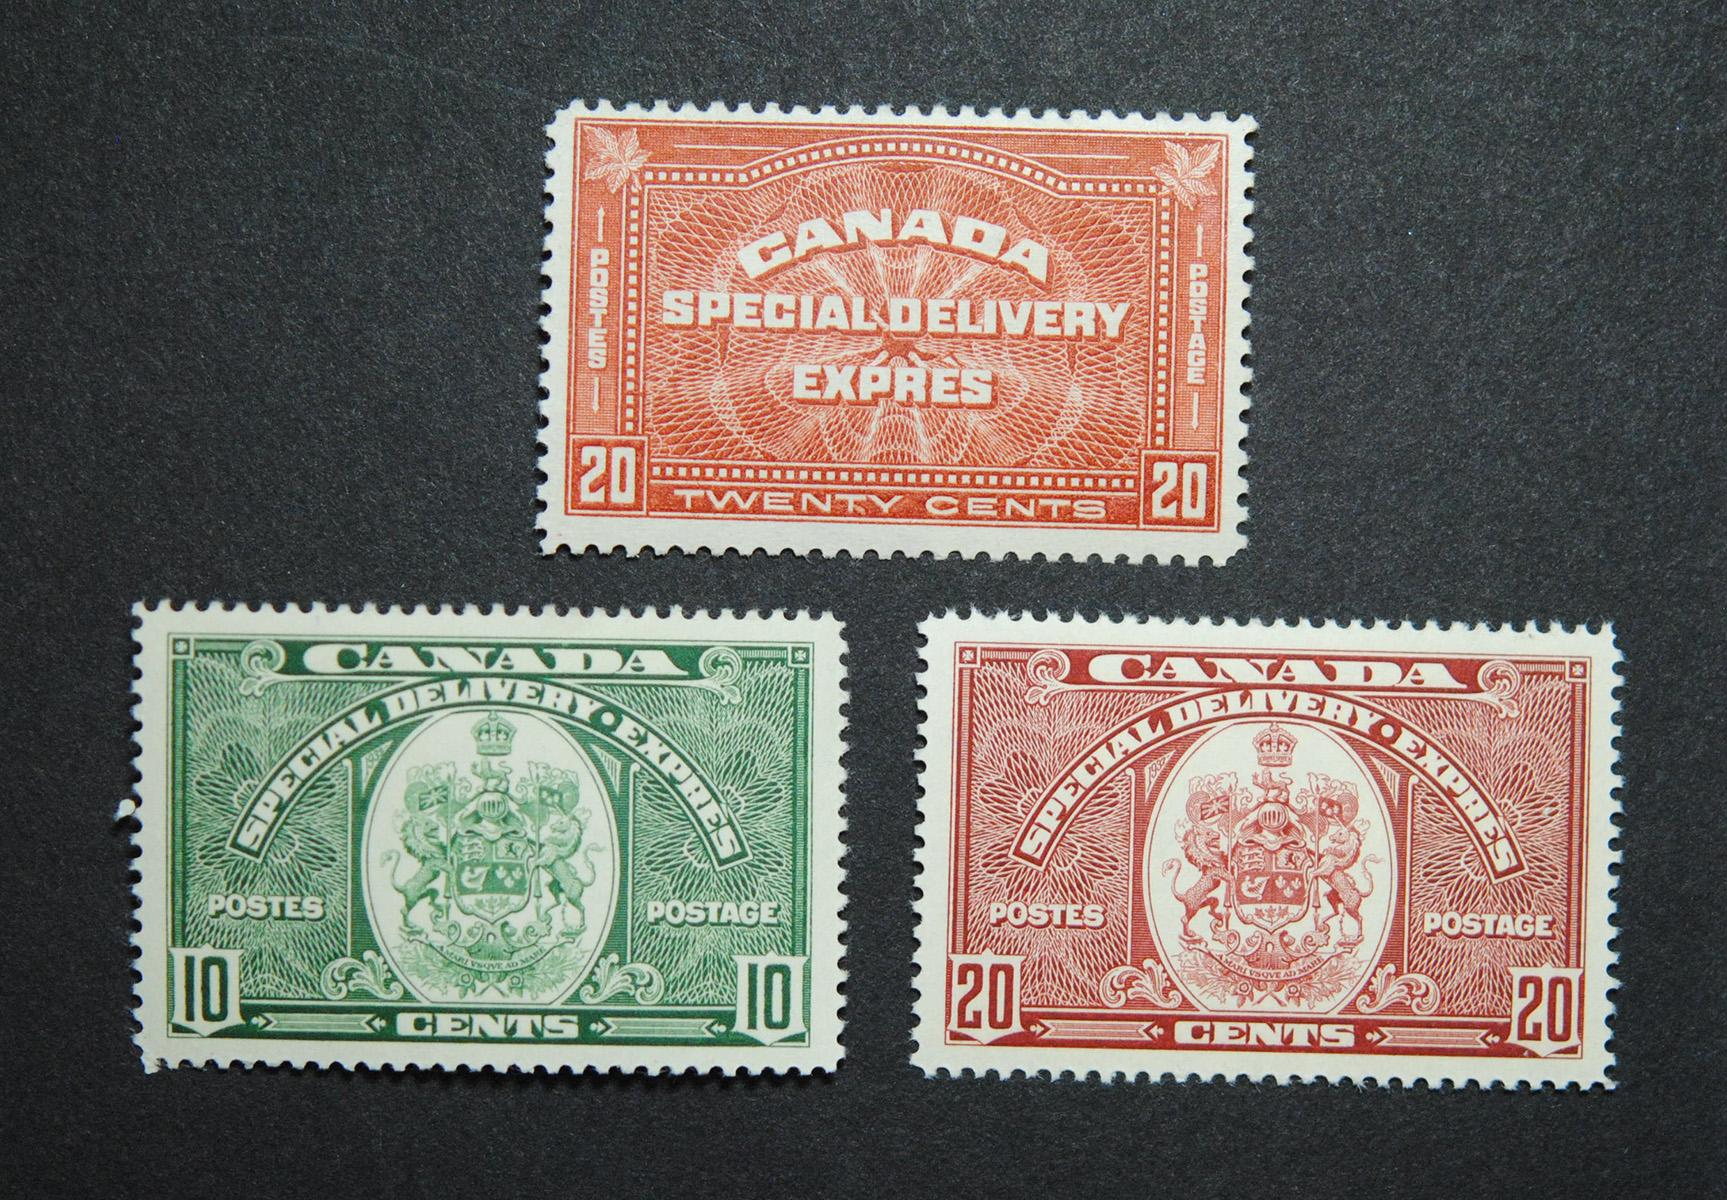 Canada Special Delivery Stamps